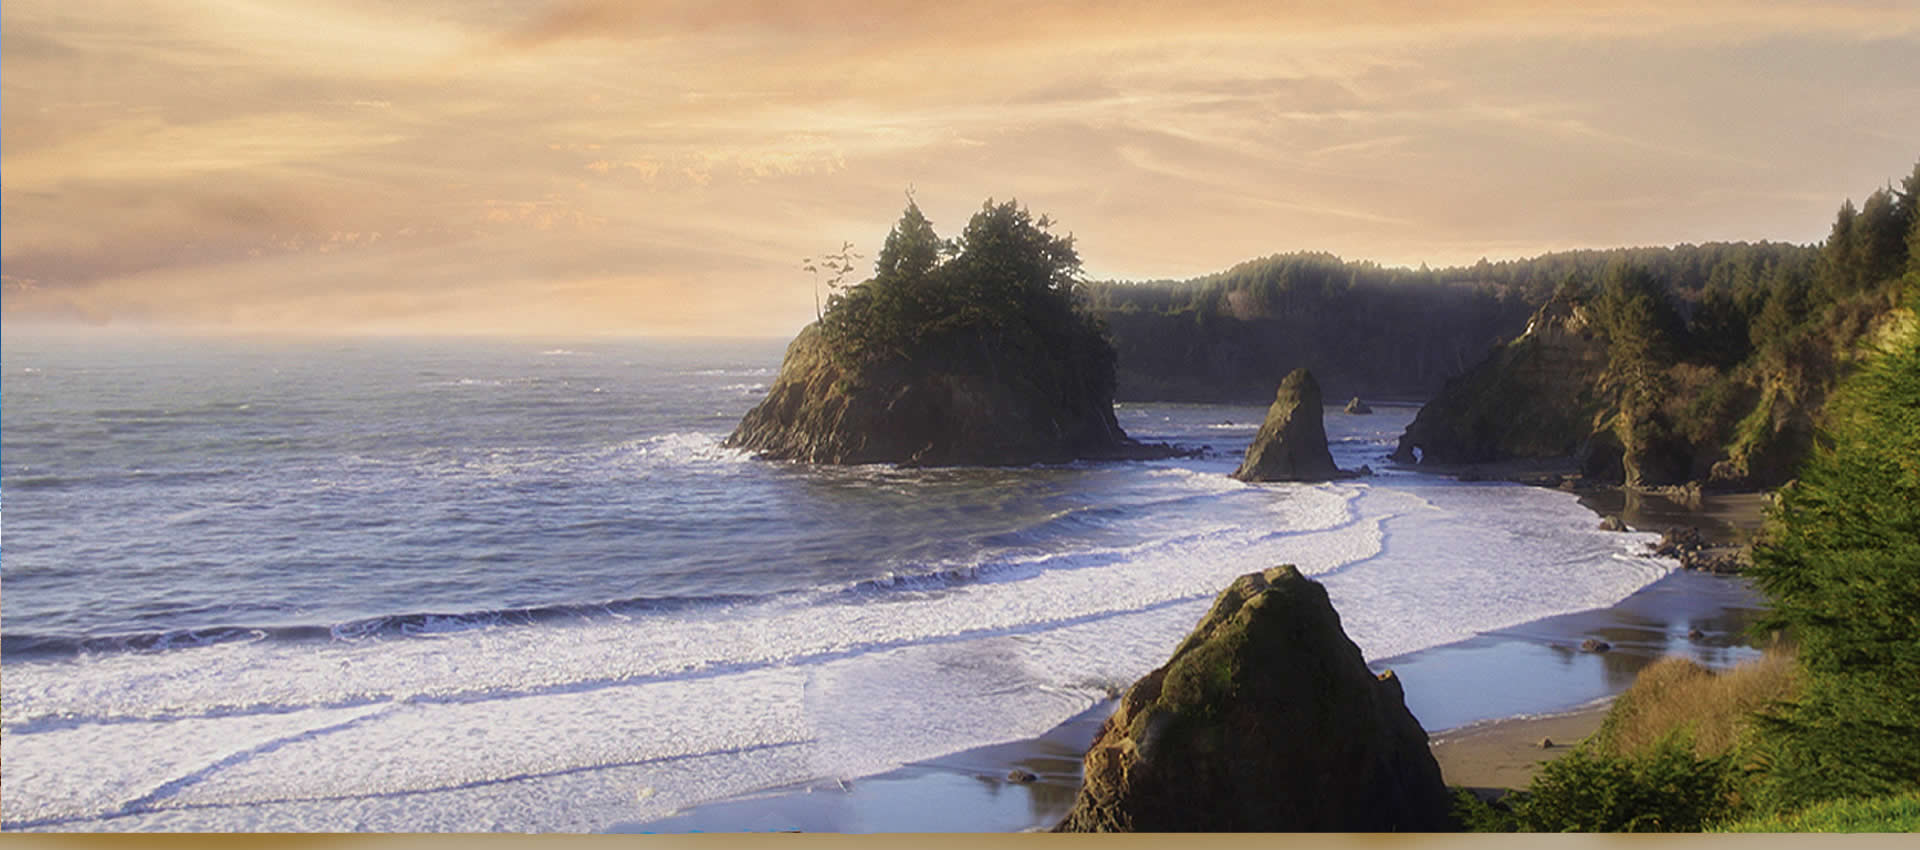 Northern California Redwood coast ocean view